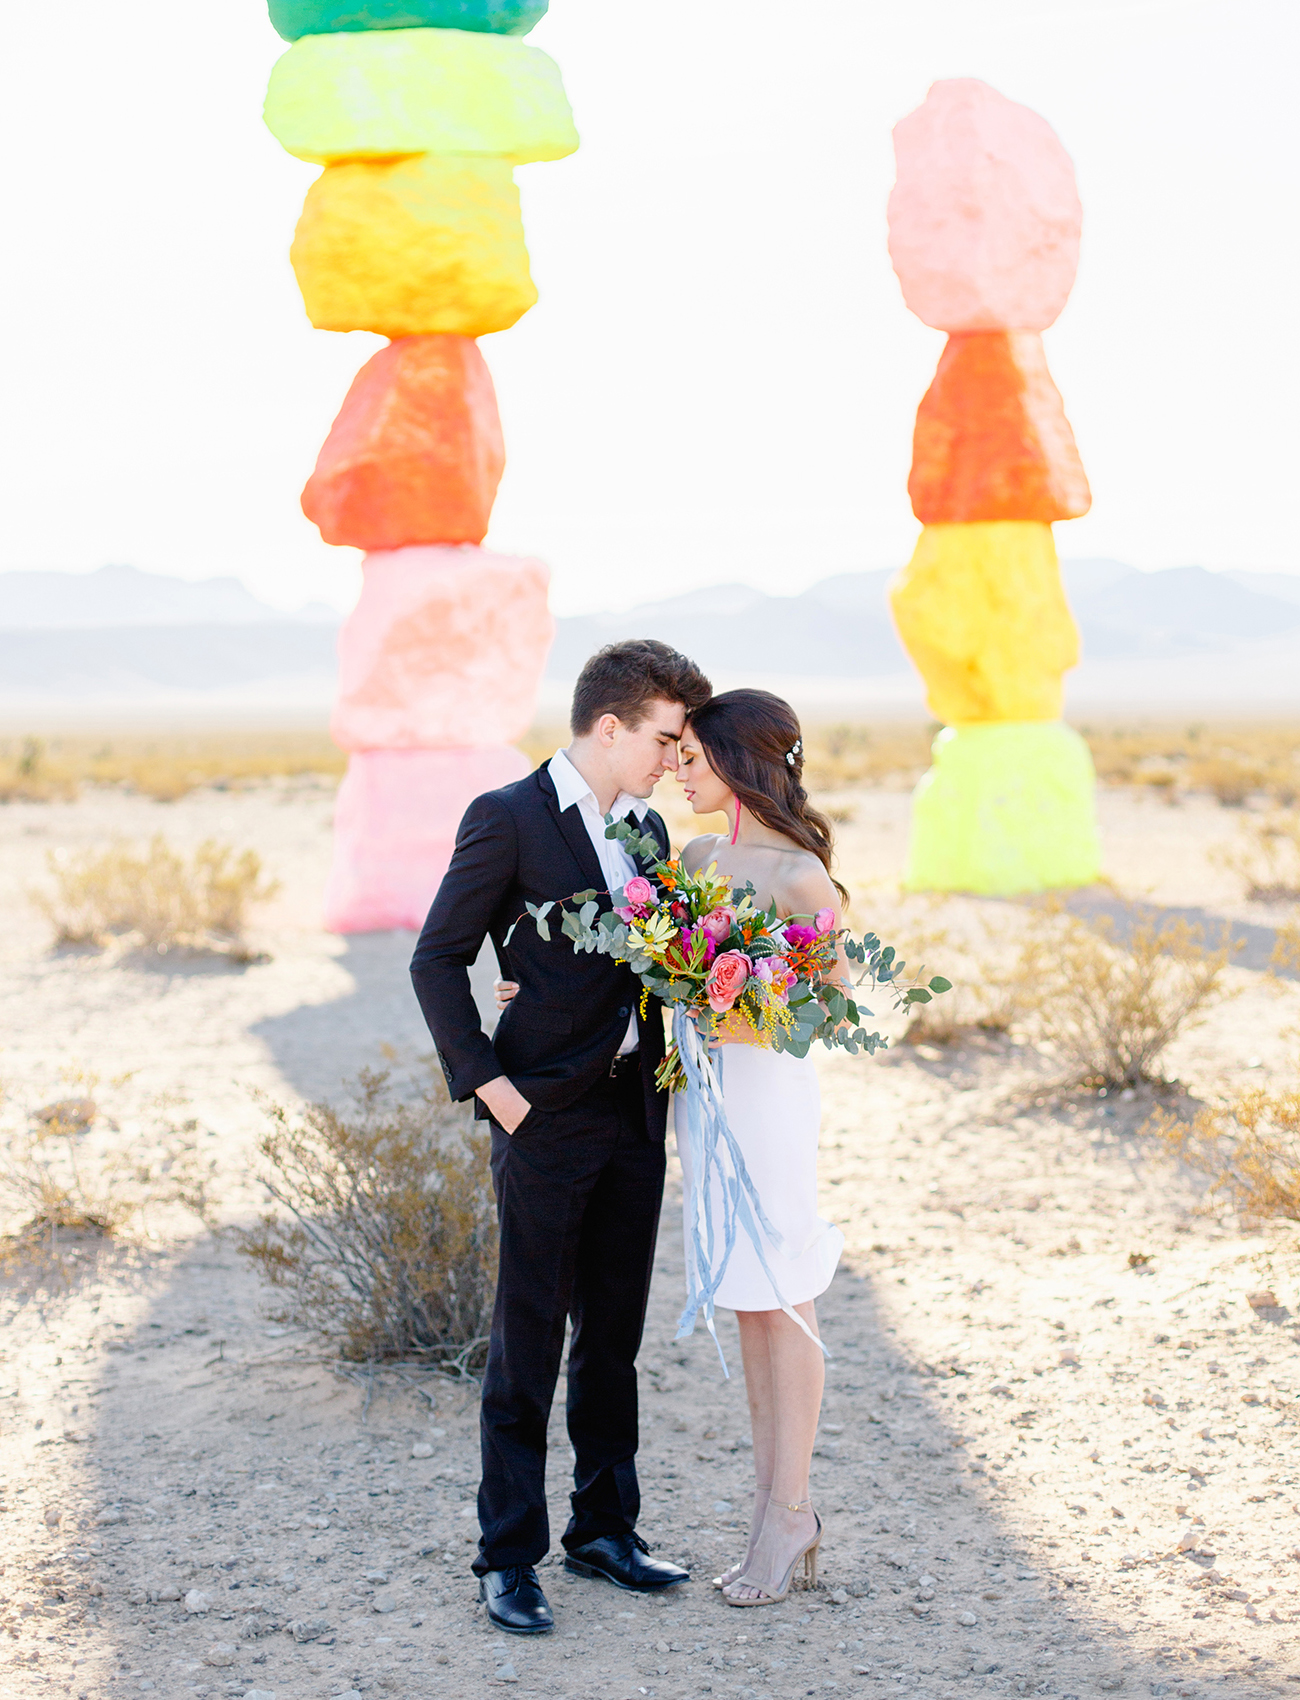 Colorful Desert Elopement Inspiration at Seven Magic Mountains